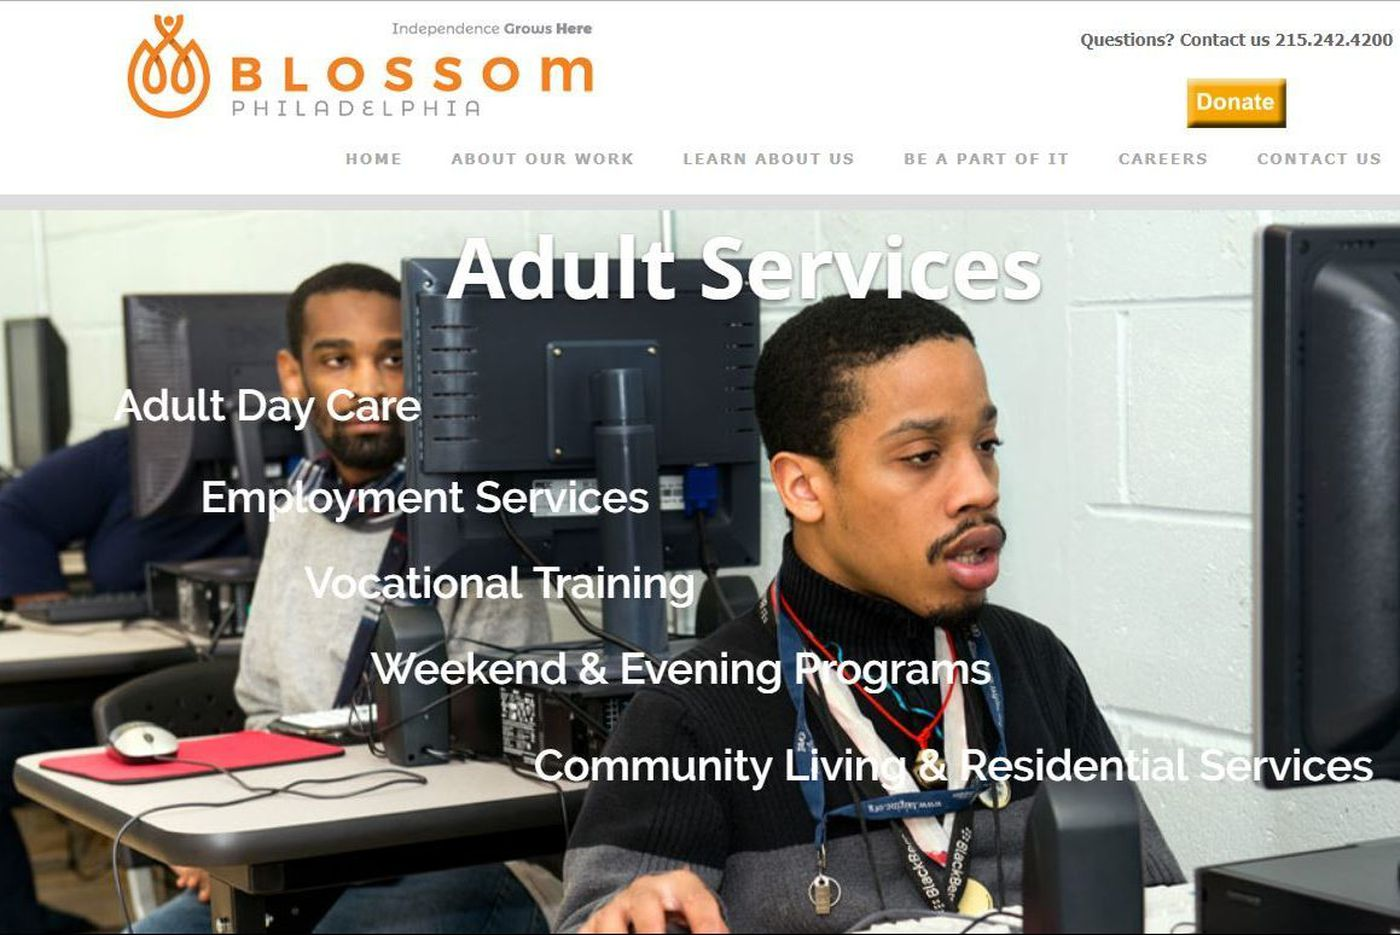 Blossom Philadelphia under investigation for Medicaid fraud